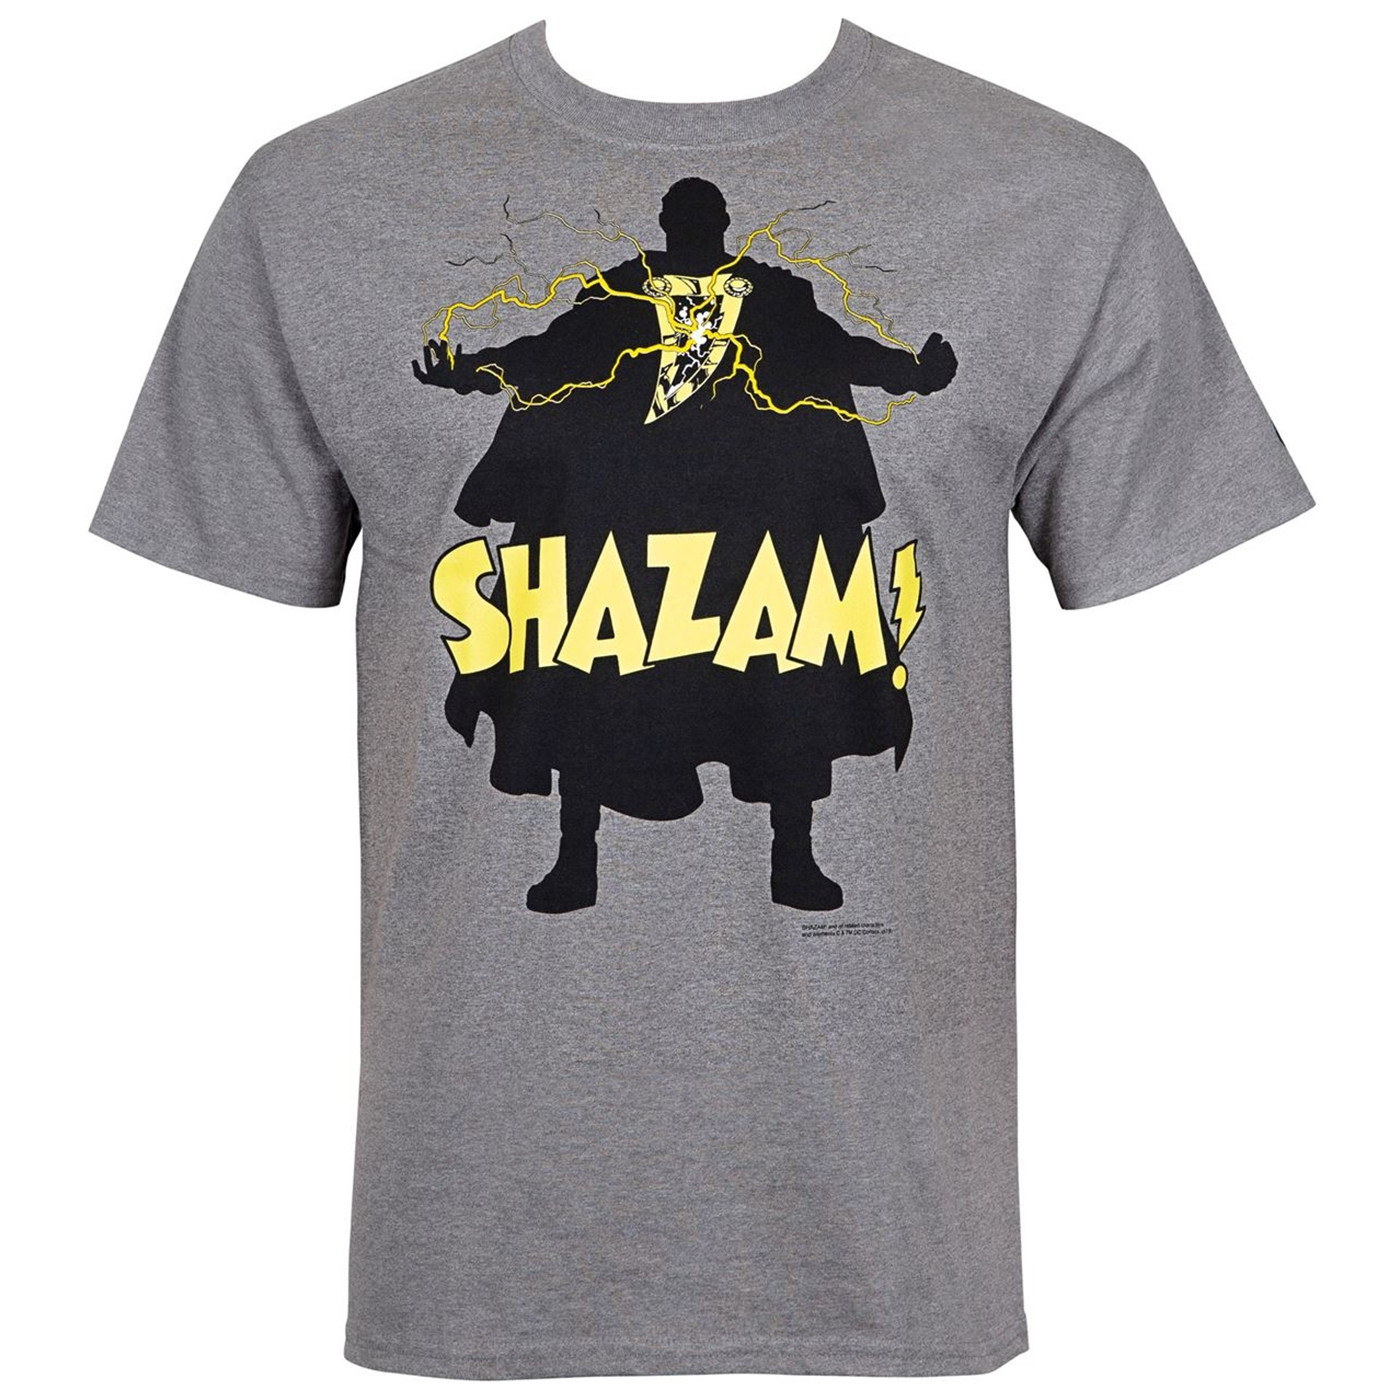 Shazam! Silhoutee Men's T-Shirt